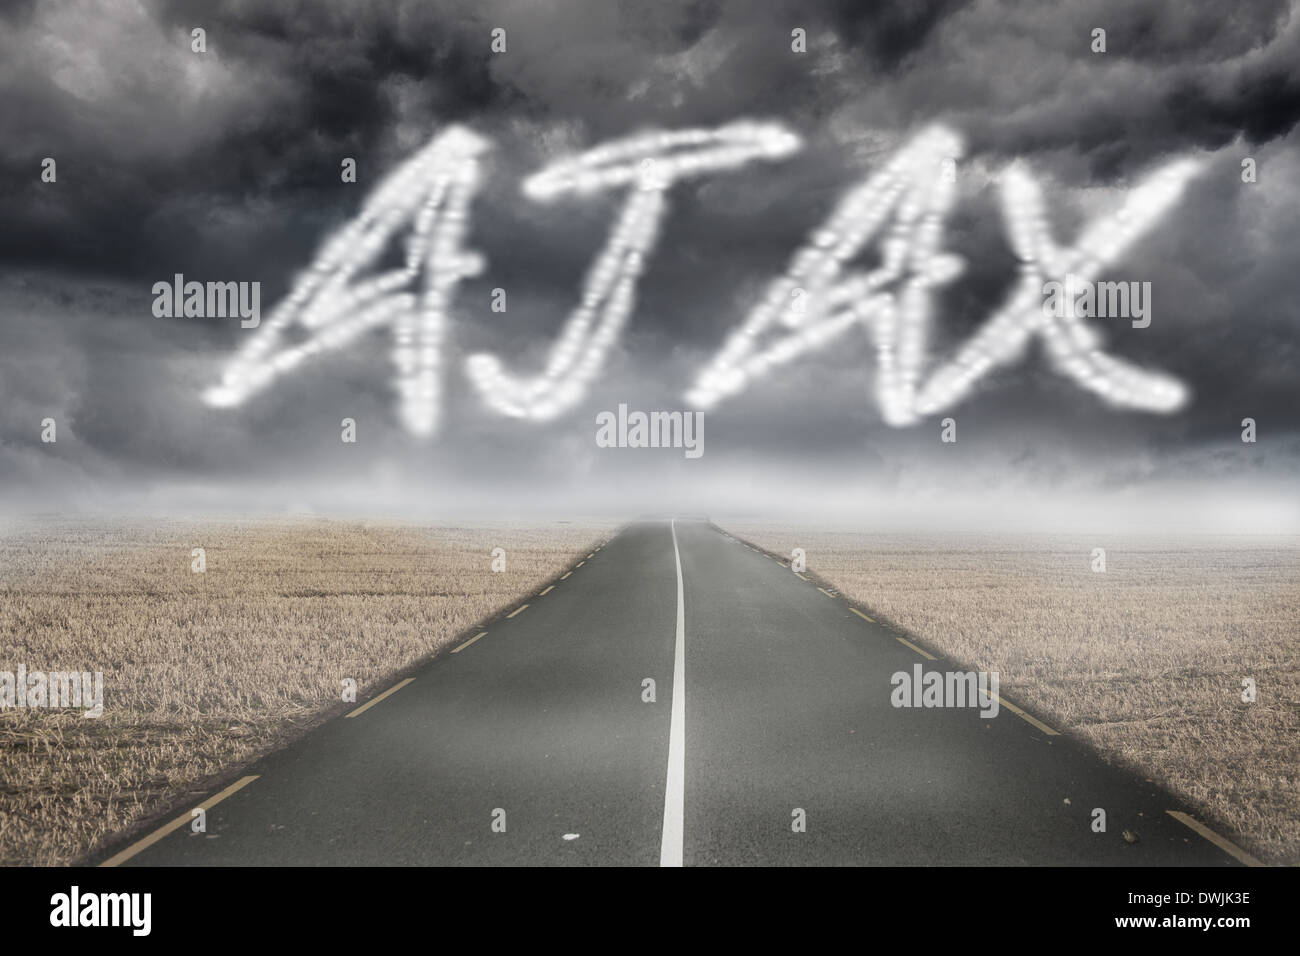 Ajax against misty brown landscape with street - Stock Image